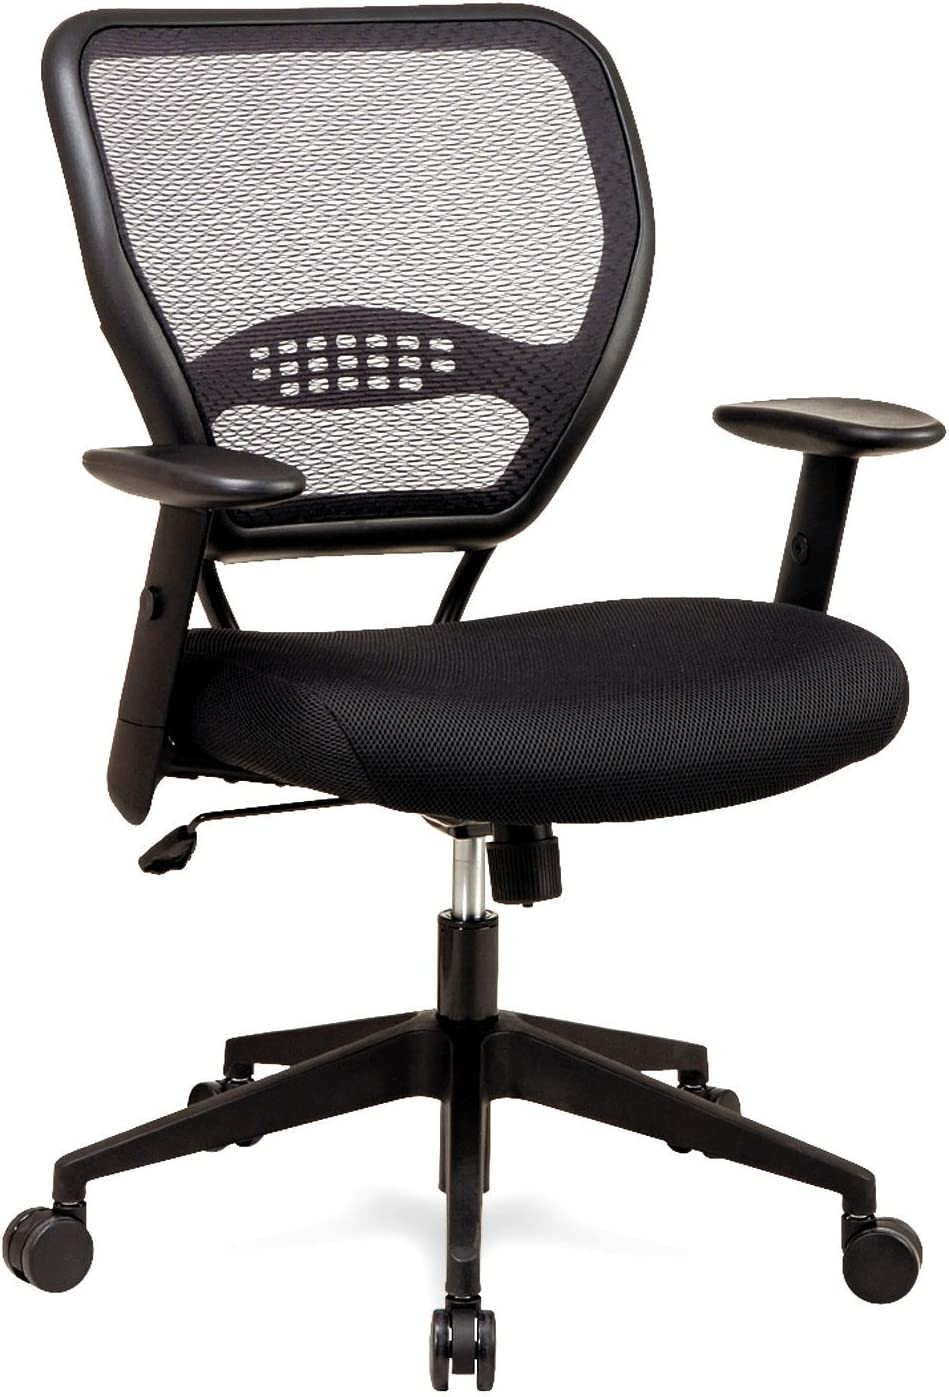 Space Seating - Studio Chair